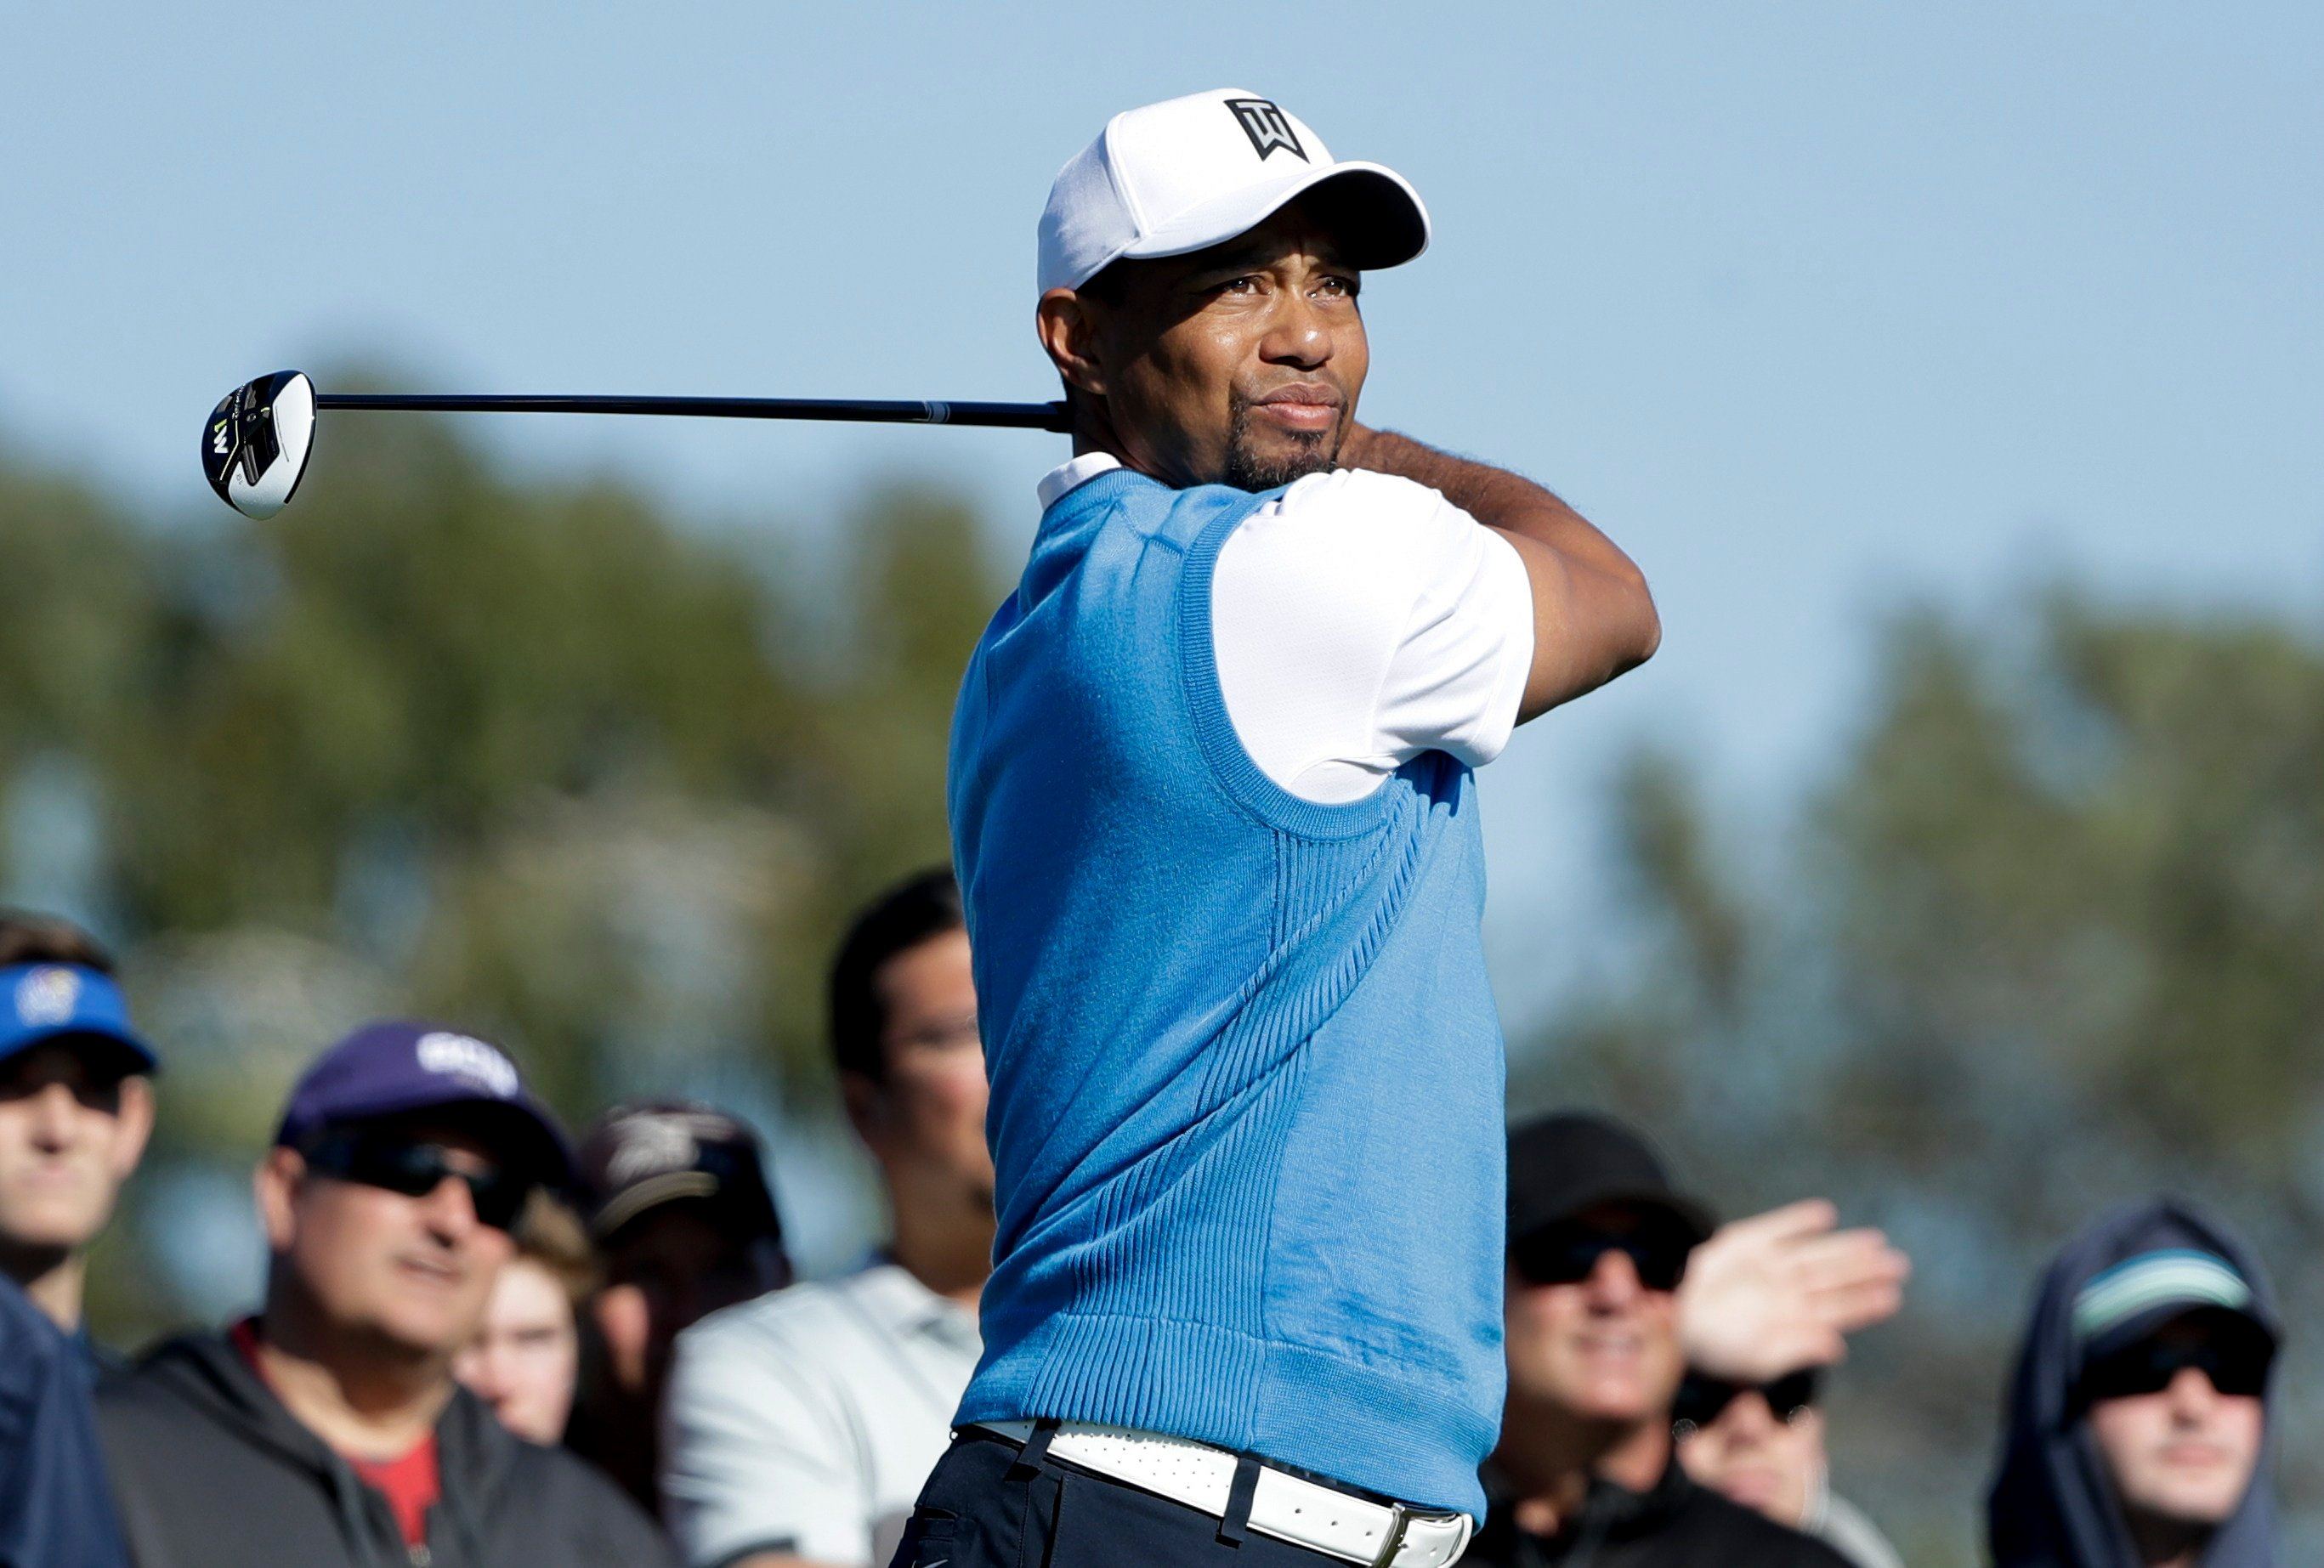 Tiger Woods watches his tee shot on the second hole of the south course during the first round of the Farmers Insurance Open golf tournament Thursday, Jan. 26, 2017, in San Diego. (AP Photo/Gregory Bull)